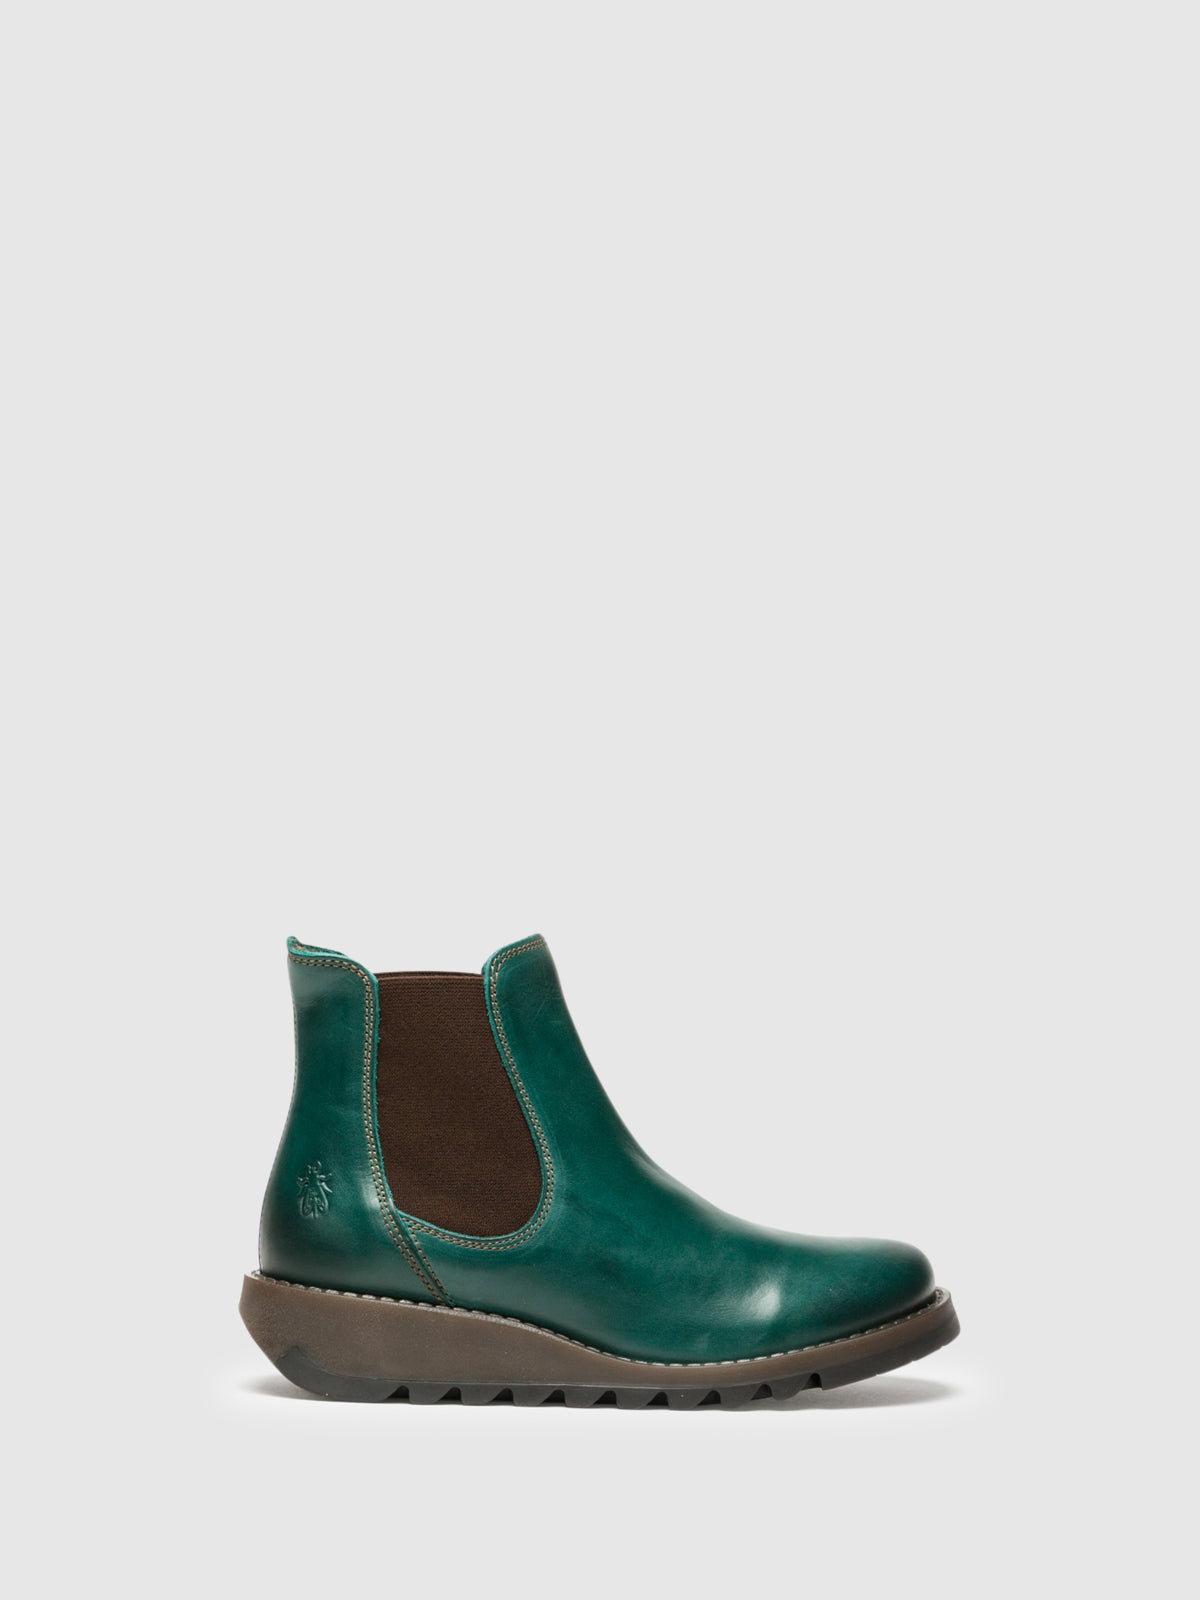 Fly London Green Chelsea Ankle Boots